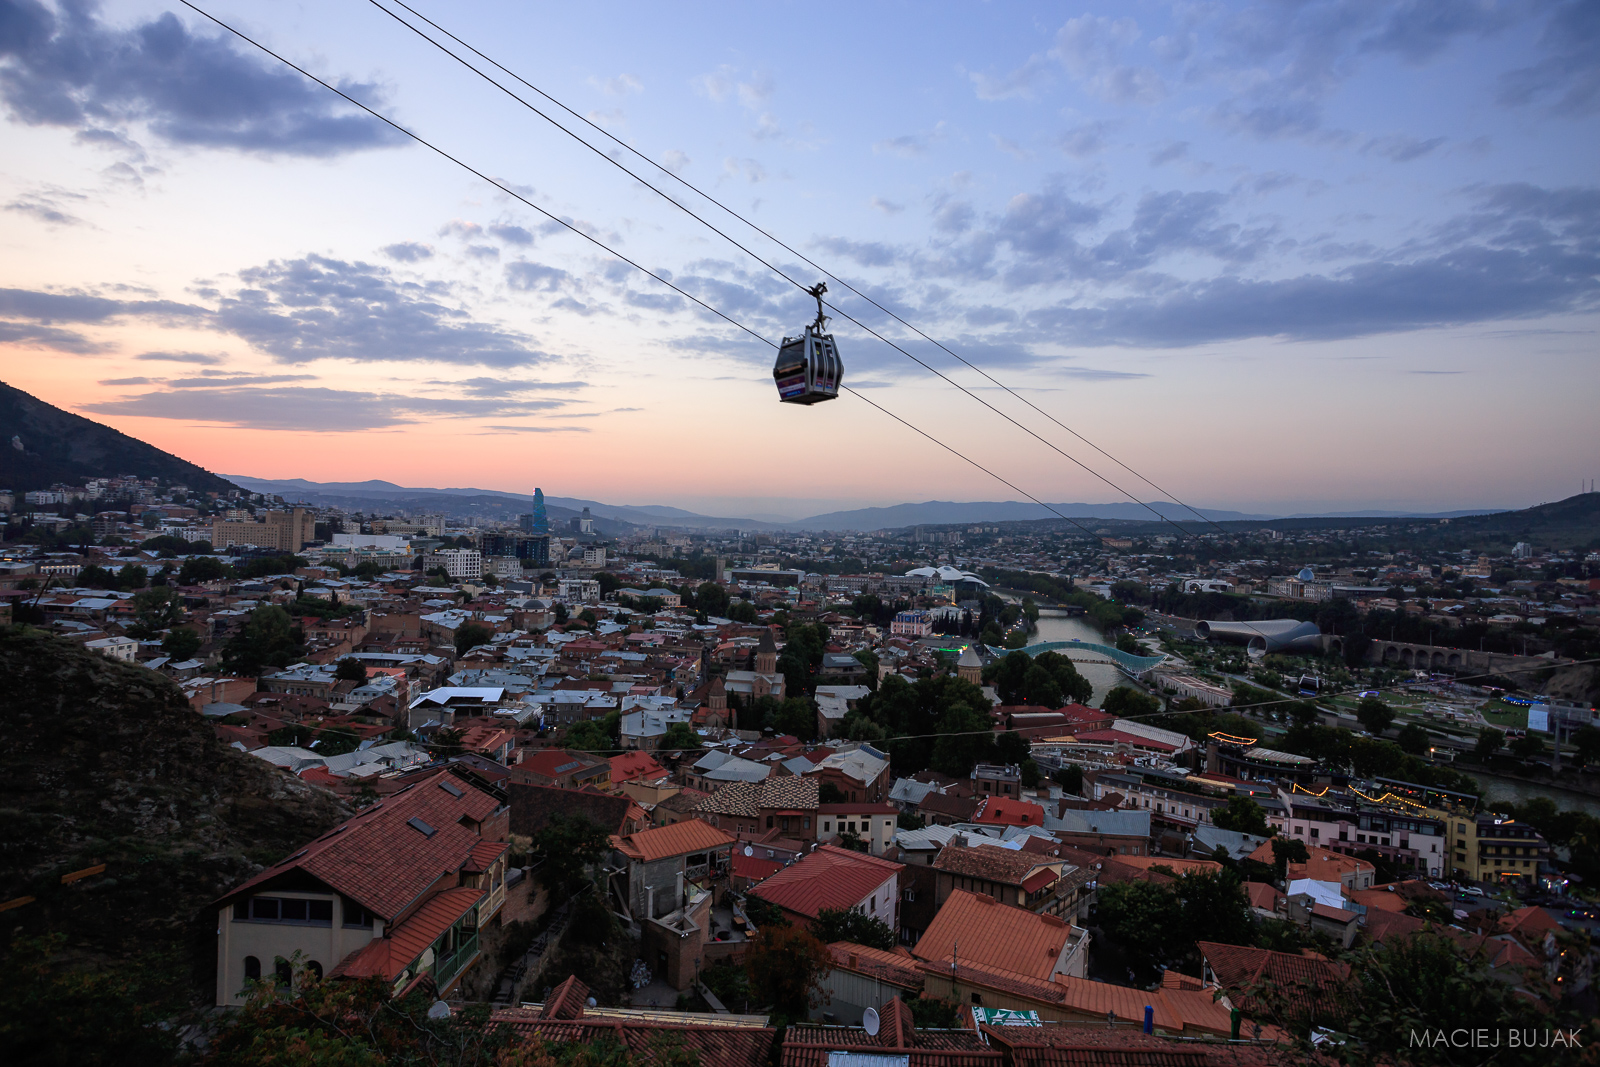 Cable car in Tbilisi, Georgia